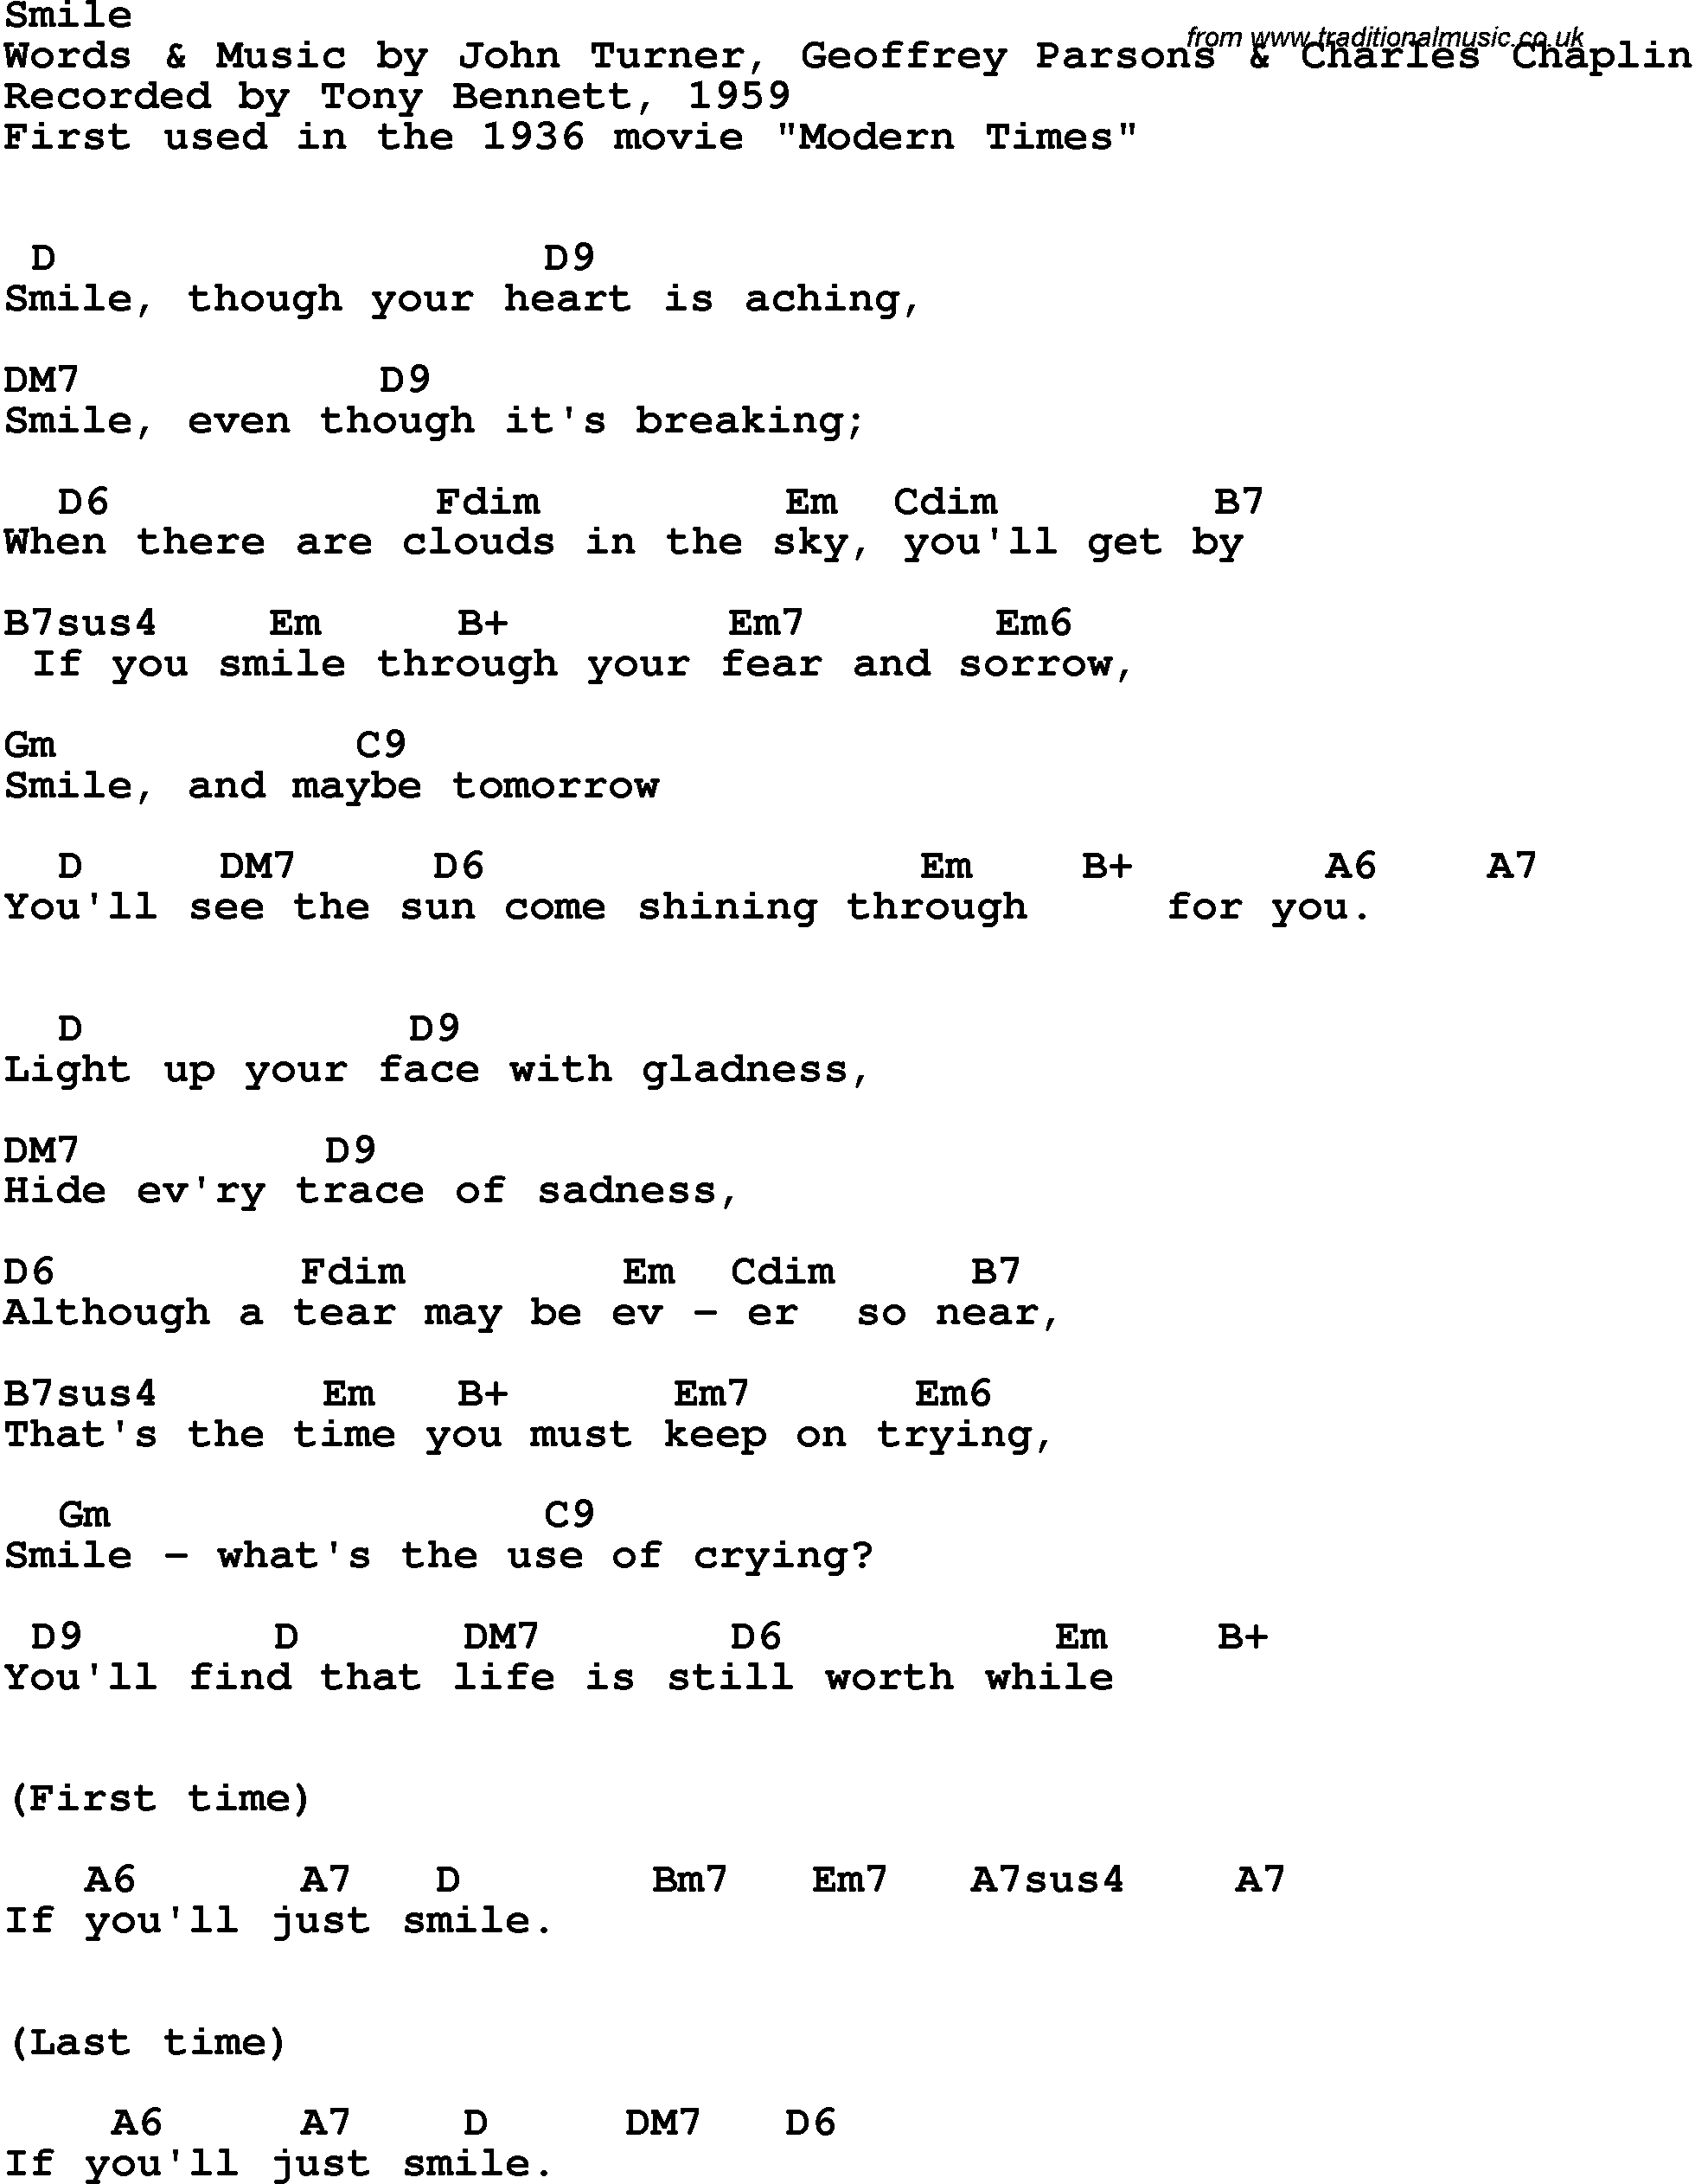 I Smile lyrics by Kirk Franklin - original song full text ...